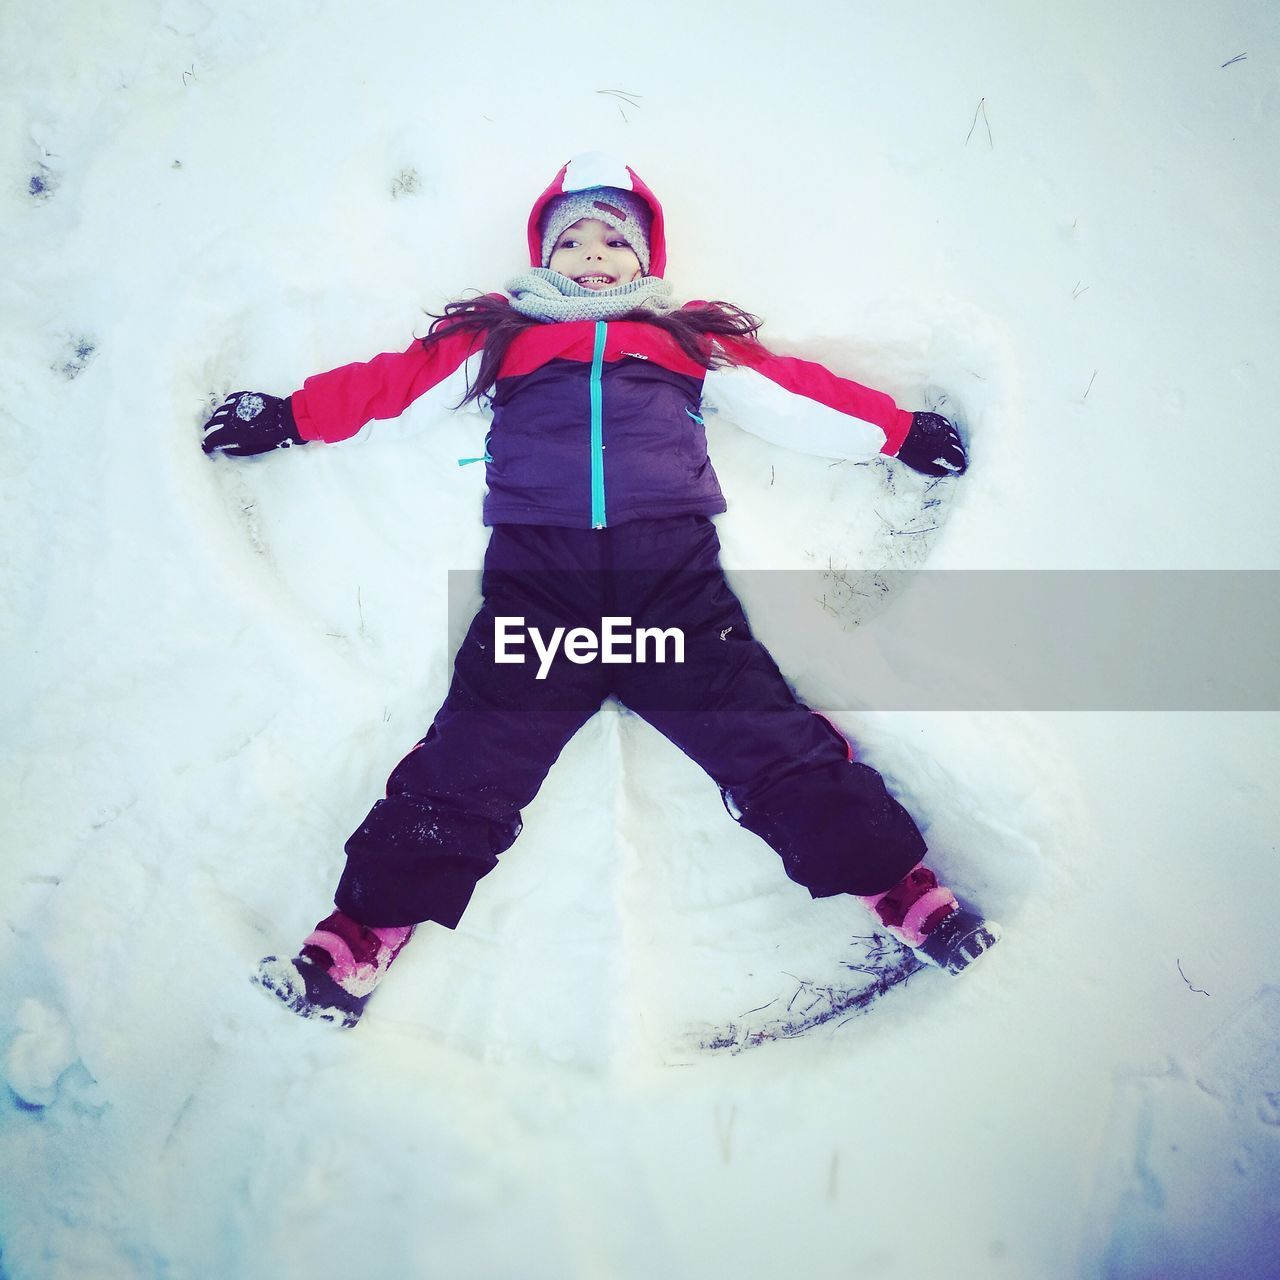 winter, snow, cold temperature, fun, warm clothing, full length, white color, childhood, one person, weather, happiness, knit hat, smiling, front view, enjoyment, playing, leisure activity, real people, lifestyles, outdoors, girls, day, tobogganing, young adult, people